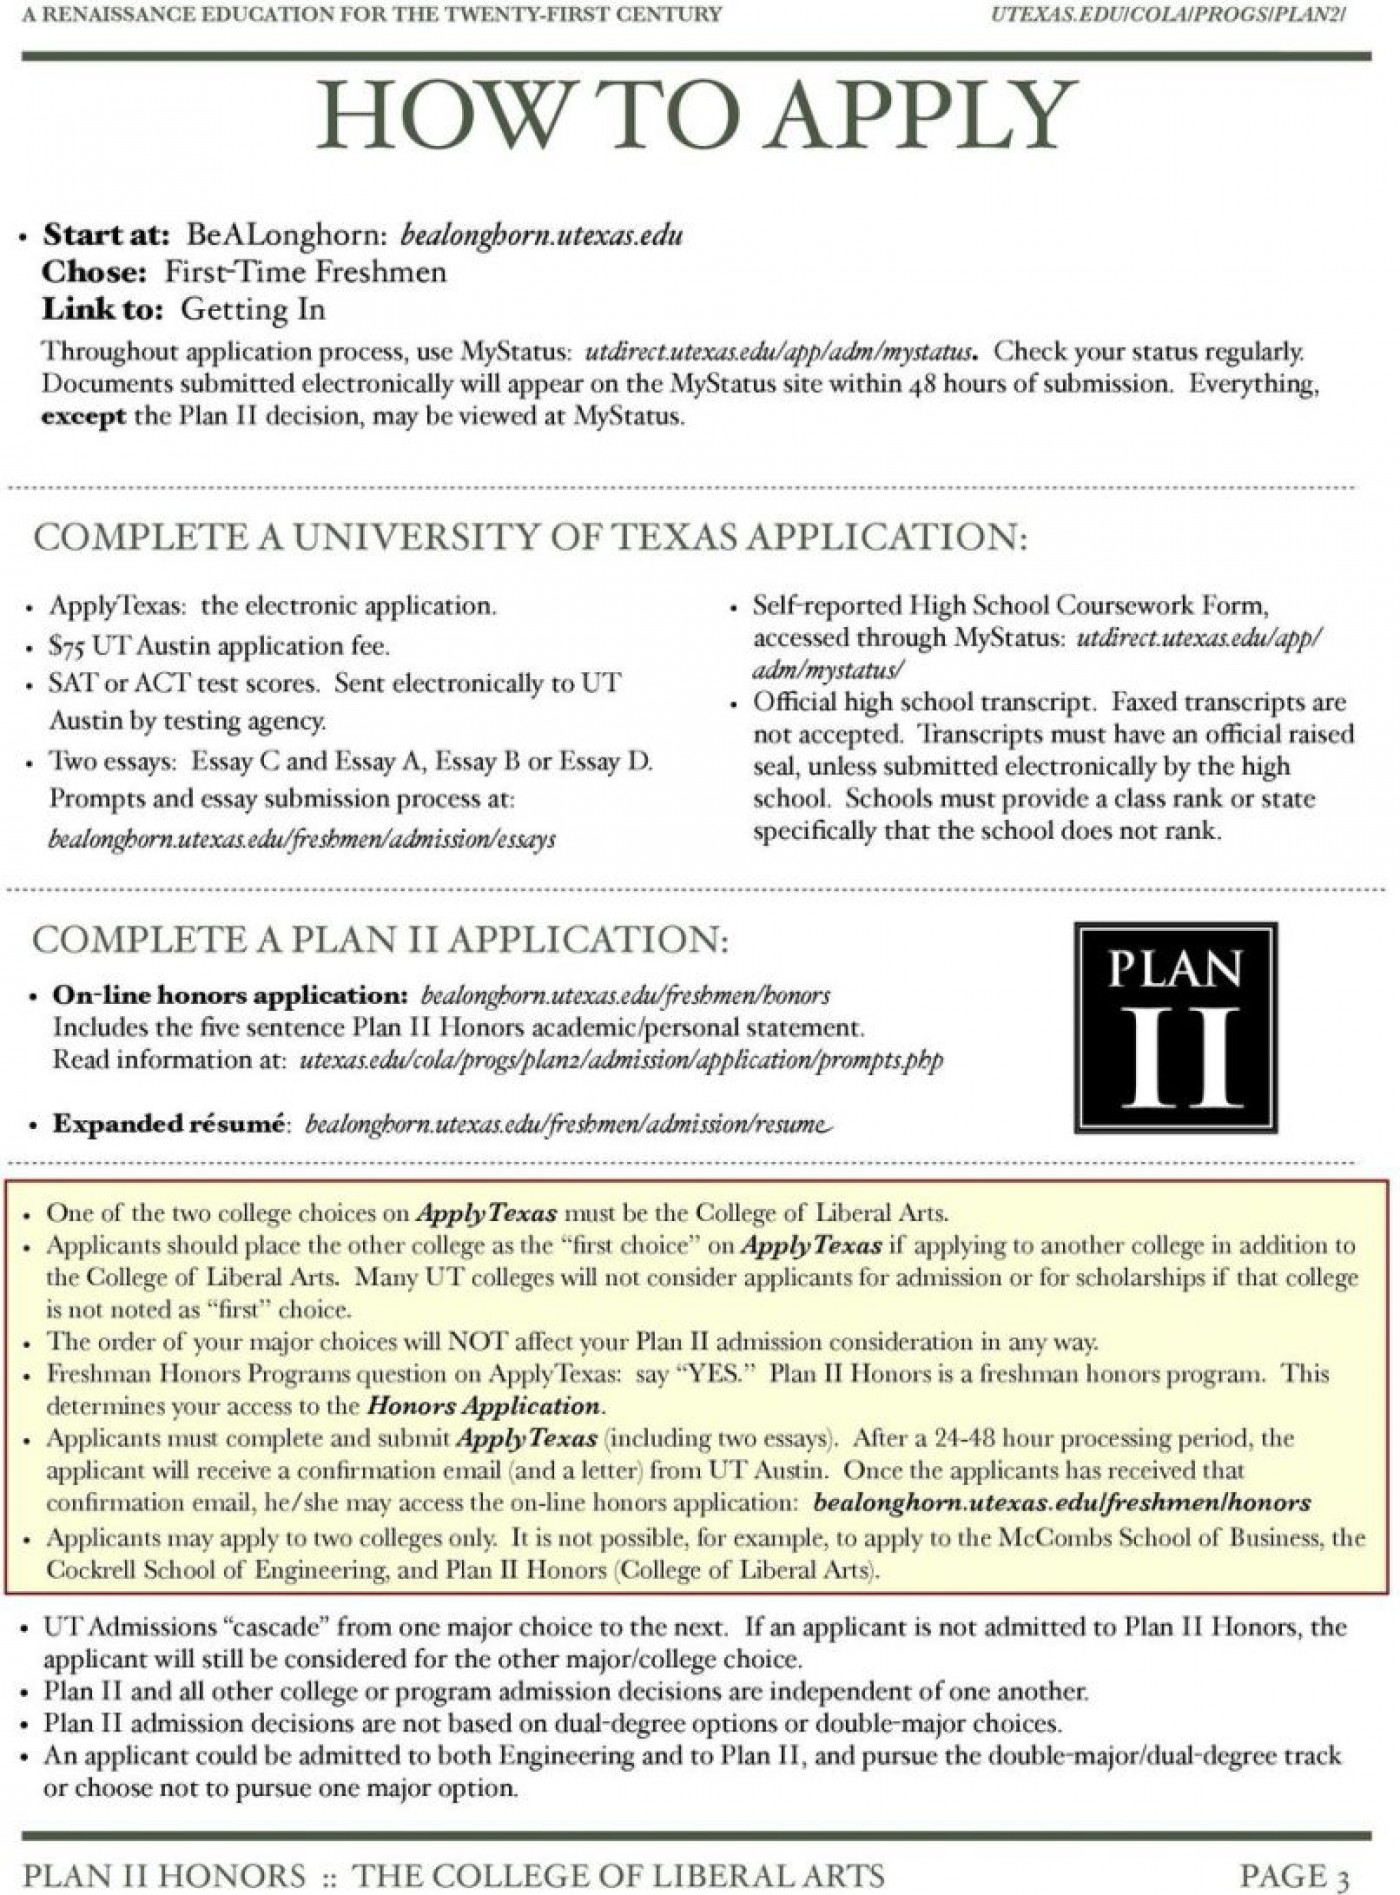 004 Essay Example Applytexas Prompts Poemdoc Or Apply Texas Topic Examples P Top Essays 2019 That Worked Word Limit 1400